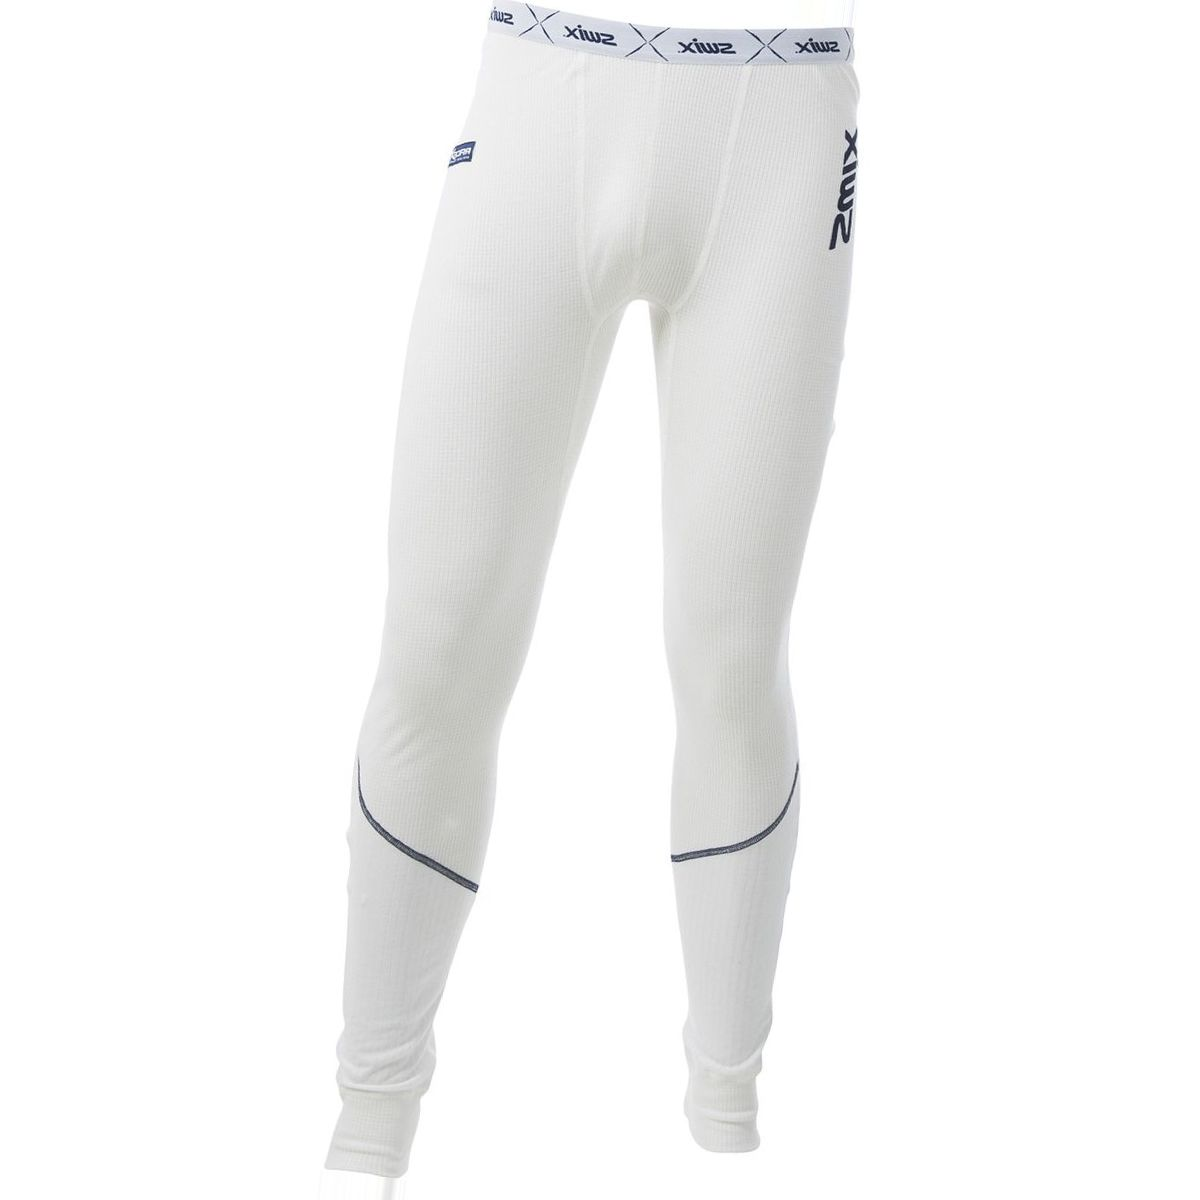 Swix Race X Warm Bodywear Pant - Men's